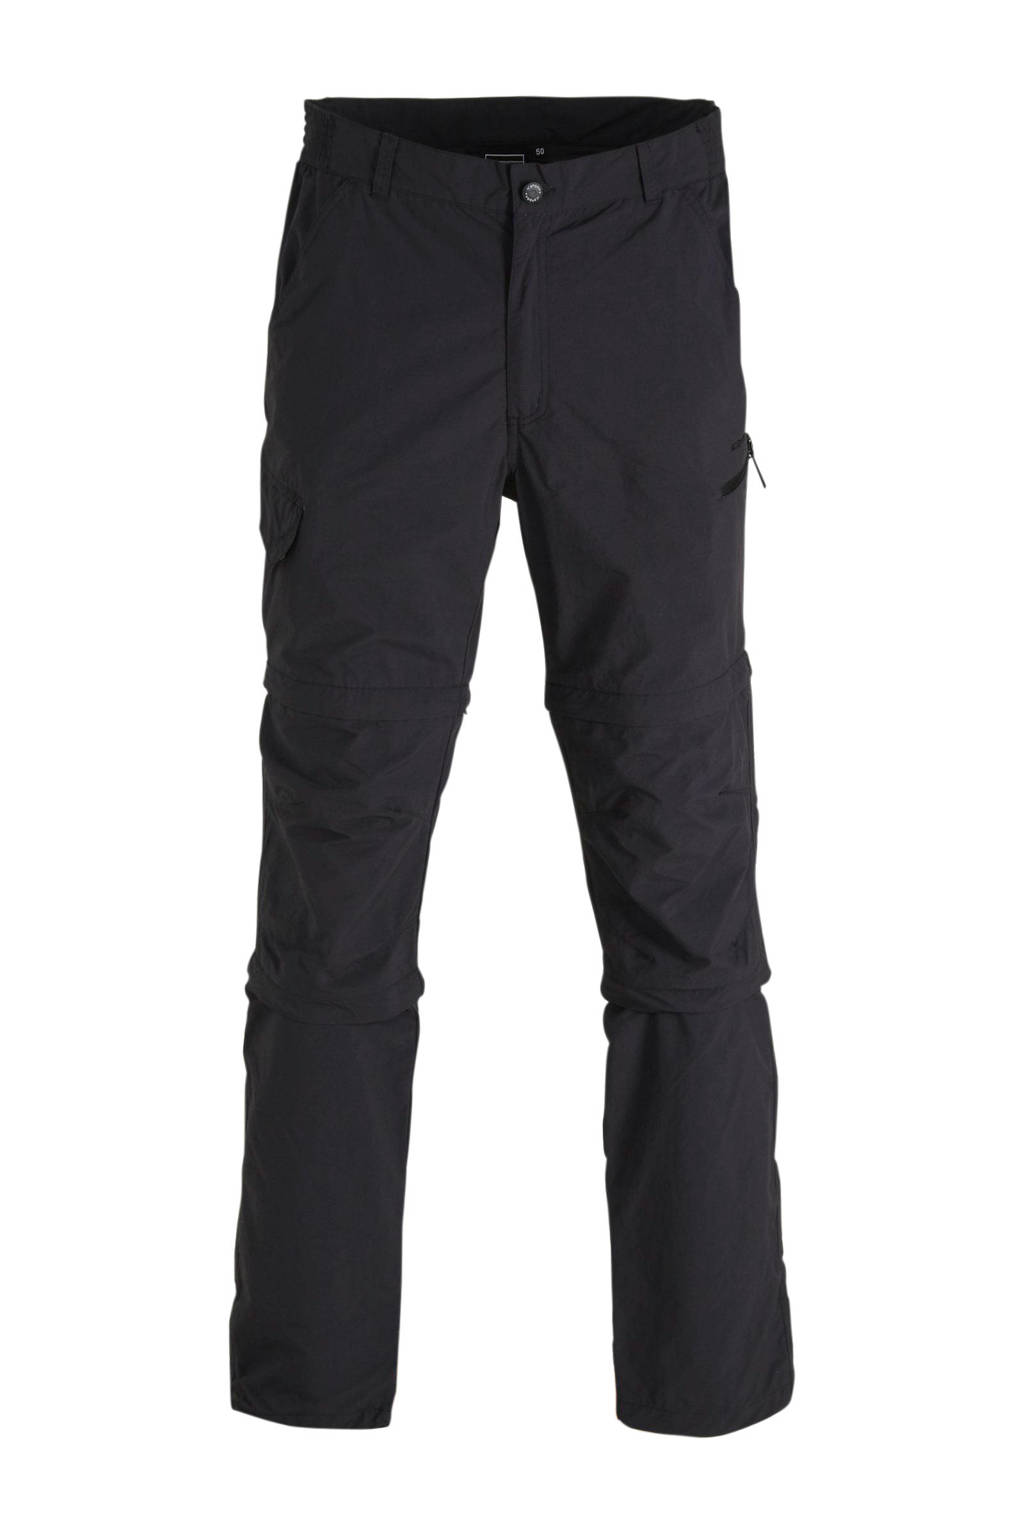 Icepeak outdoor broek 3-in-1 antraciet, Antraciet